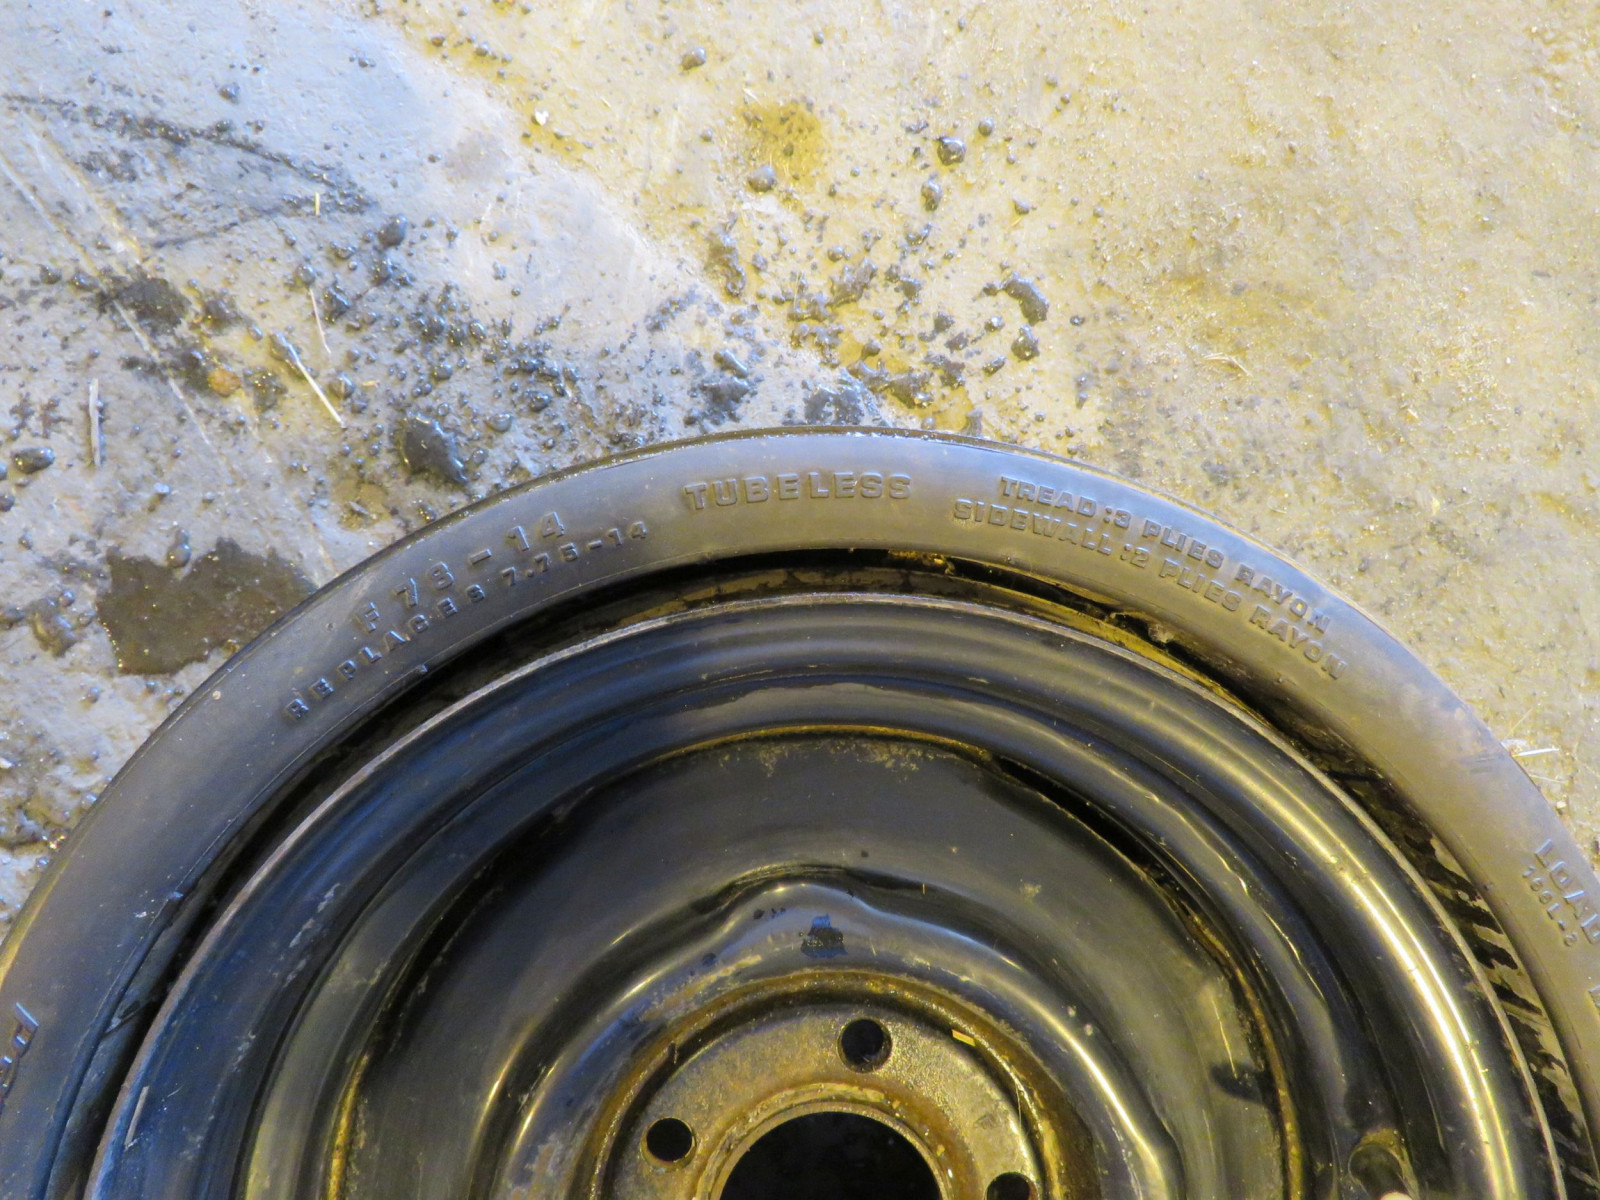 RARE BF Goodrich Collapsible Spare Tire for 426 HEMI CUDA, Challenger - Image 2